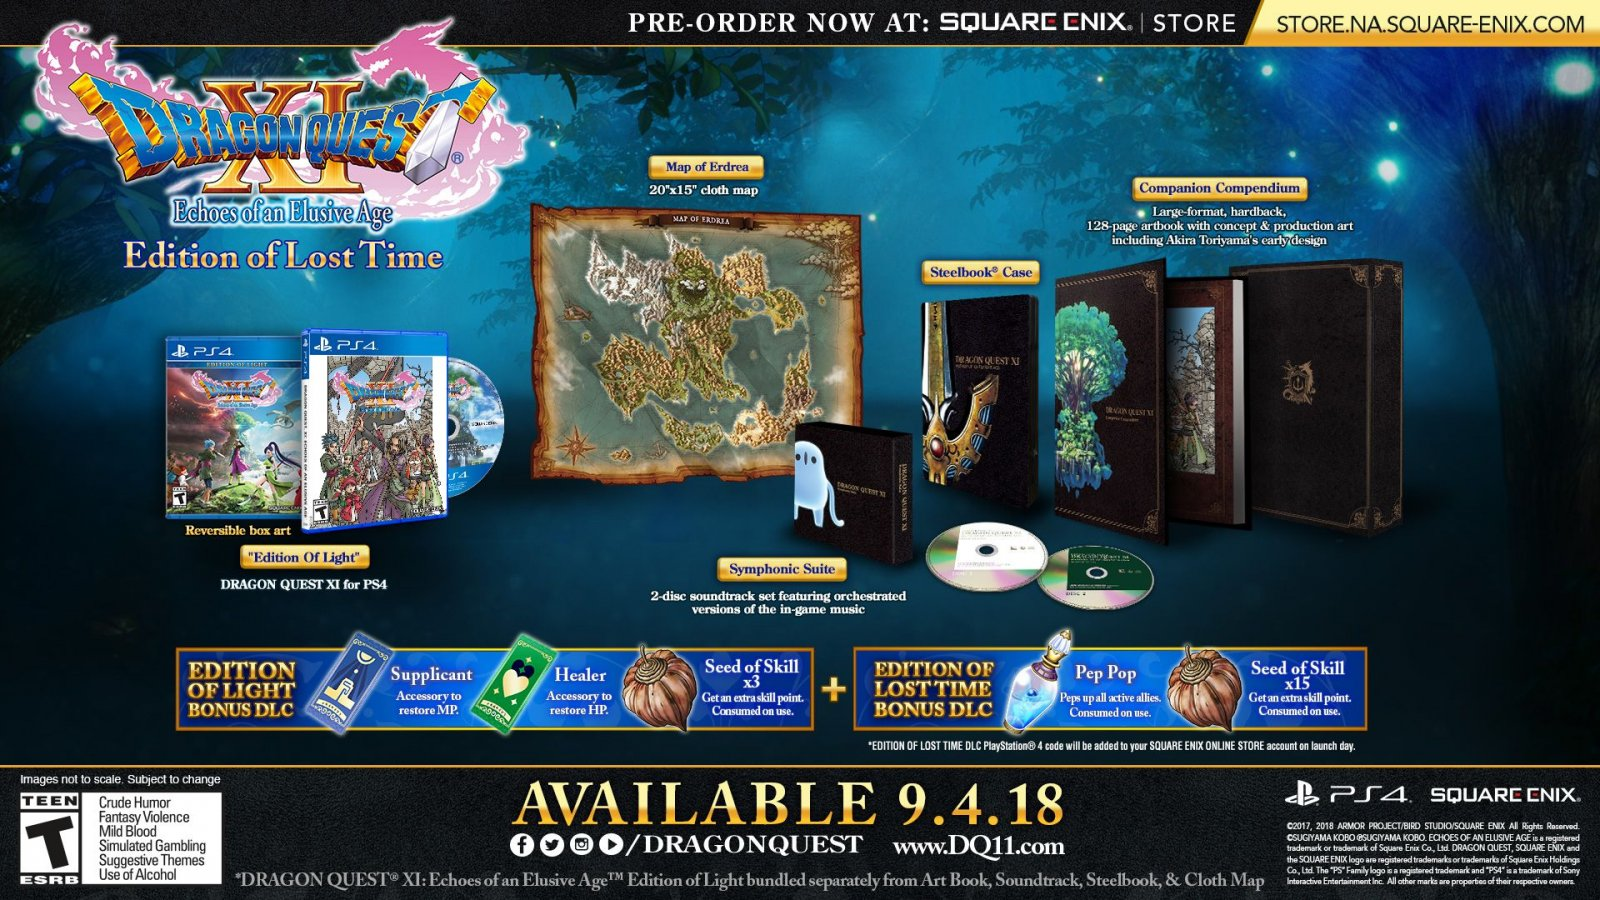 Dragon quest xi special edition announced ahead of september 4 dragon quest xi special edition announced ahead of september 4 release gaming trend malvernweather Image collections